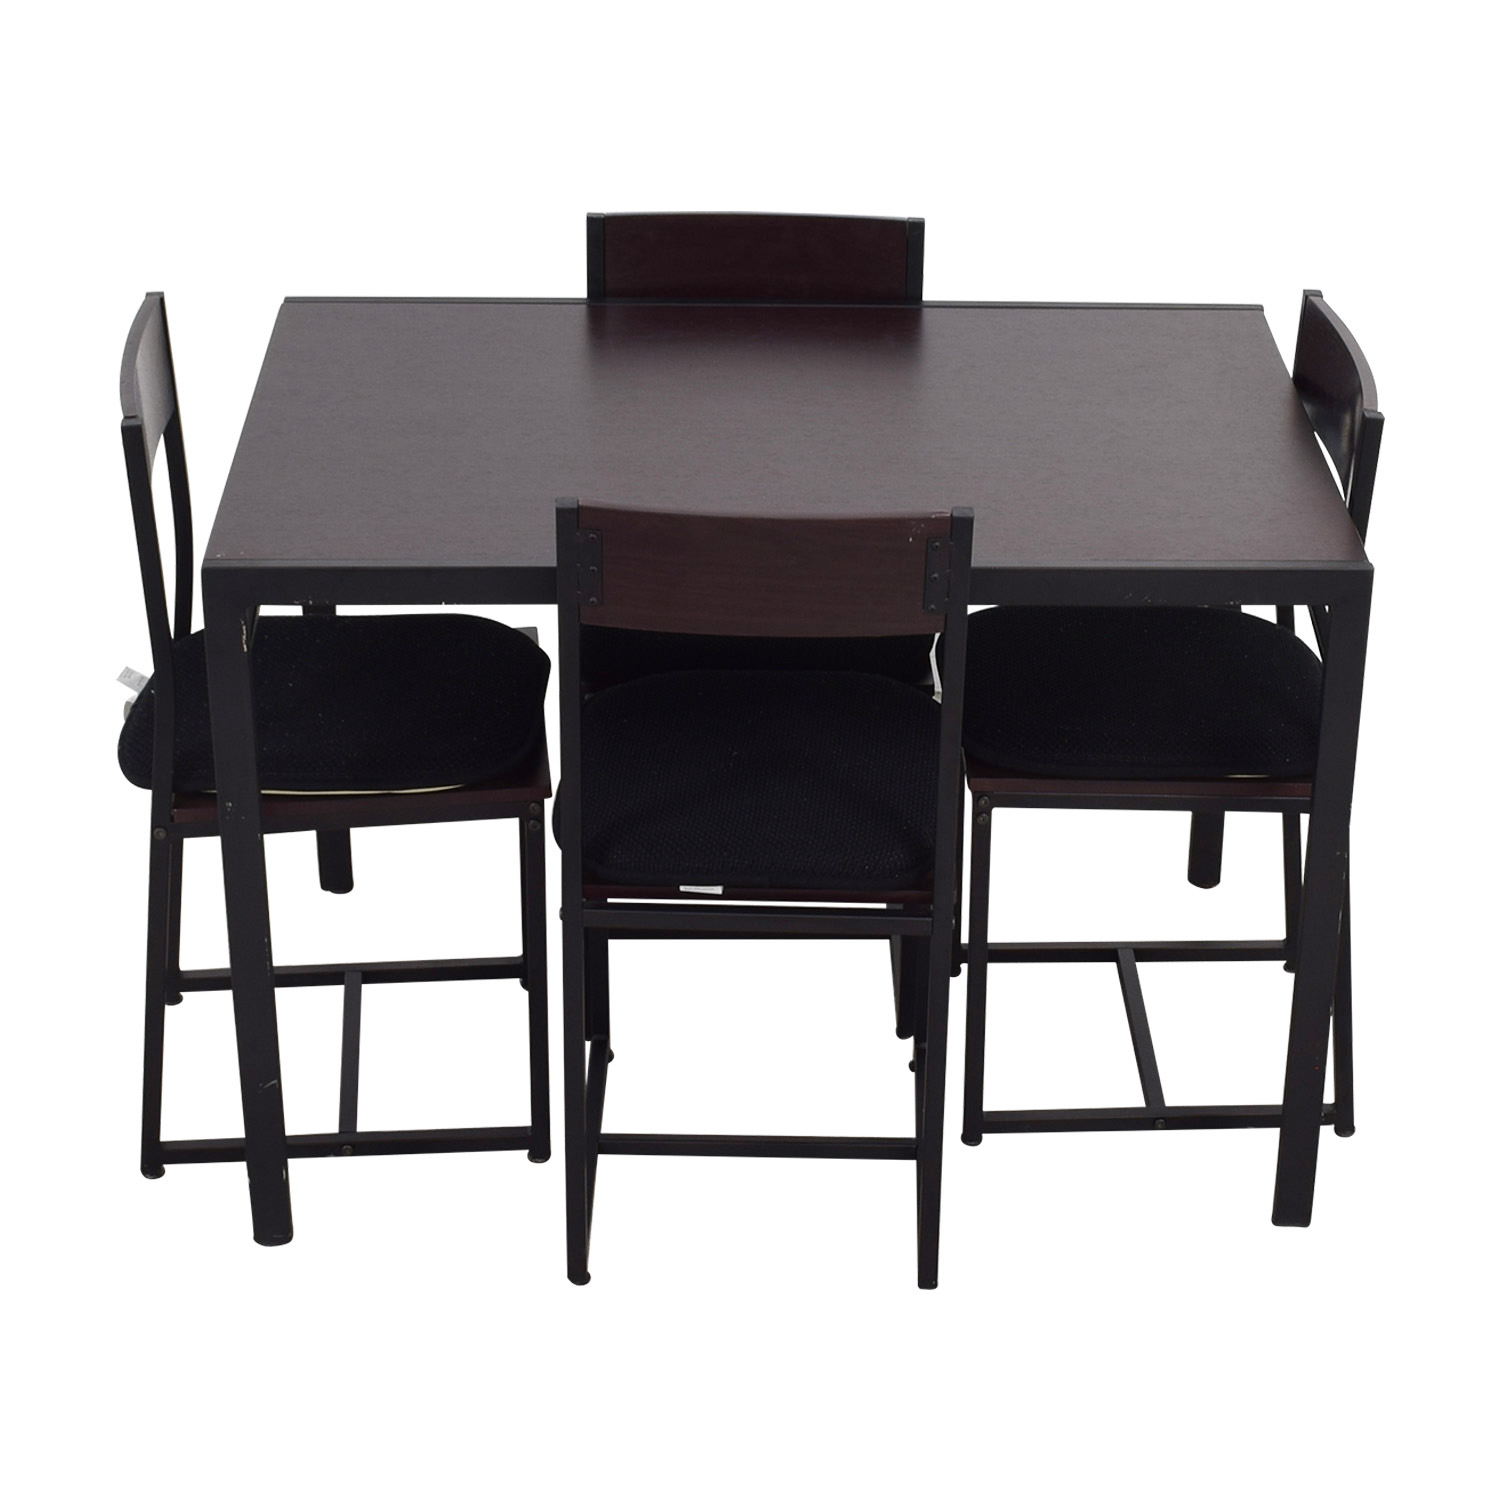 Coaster Coaster Kenefick Wood Dining Set coupon